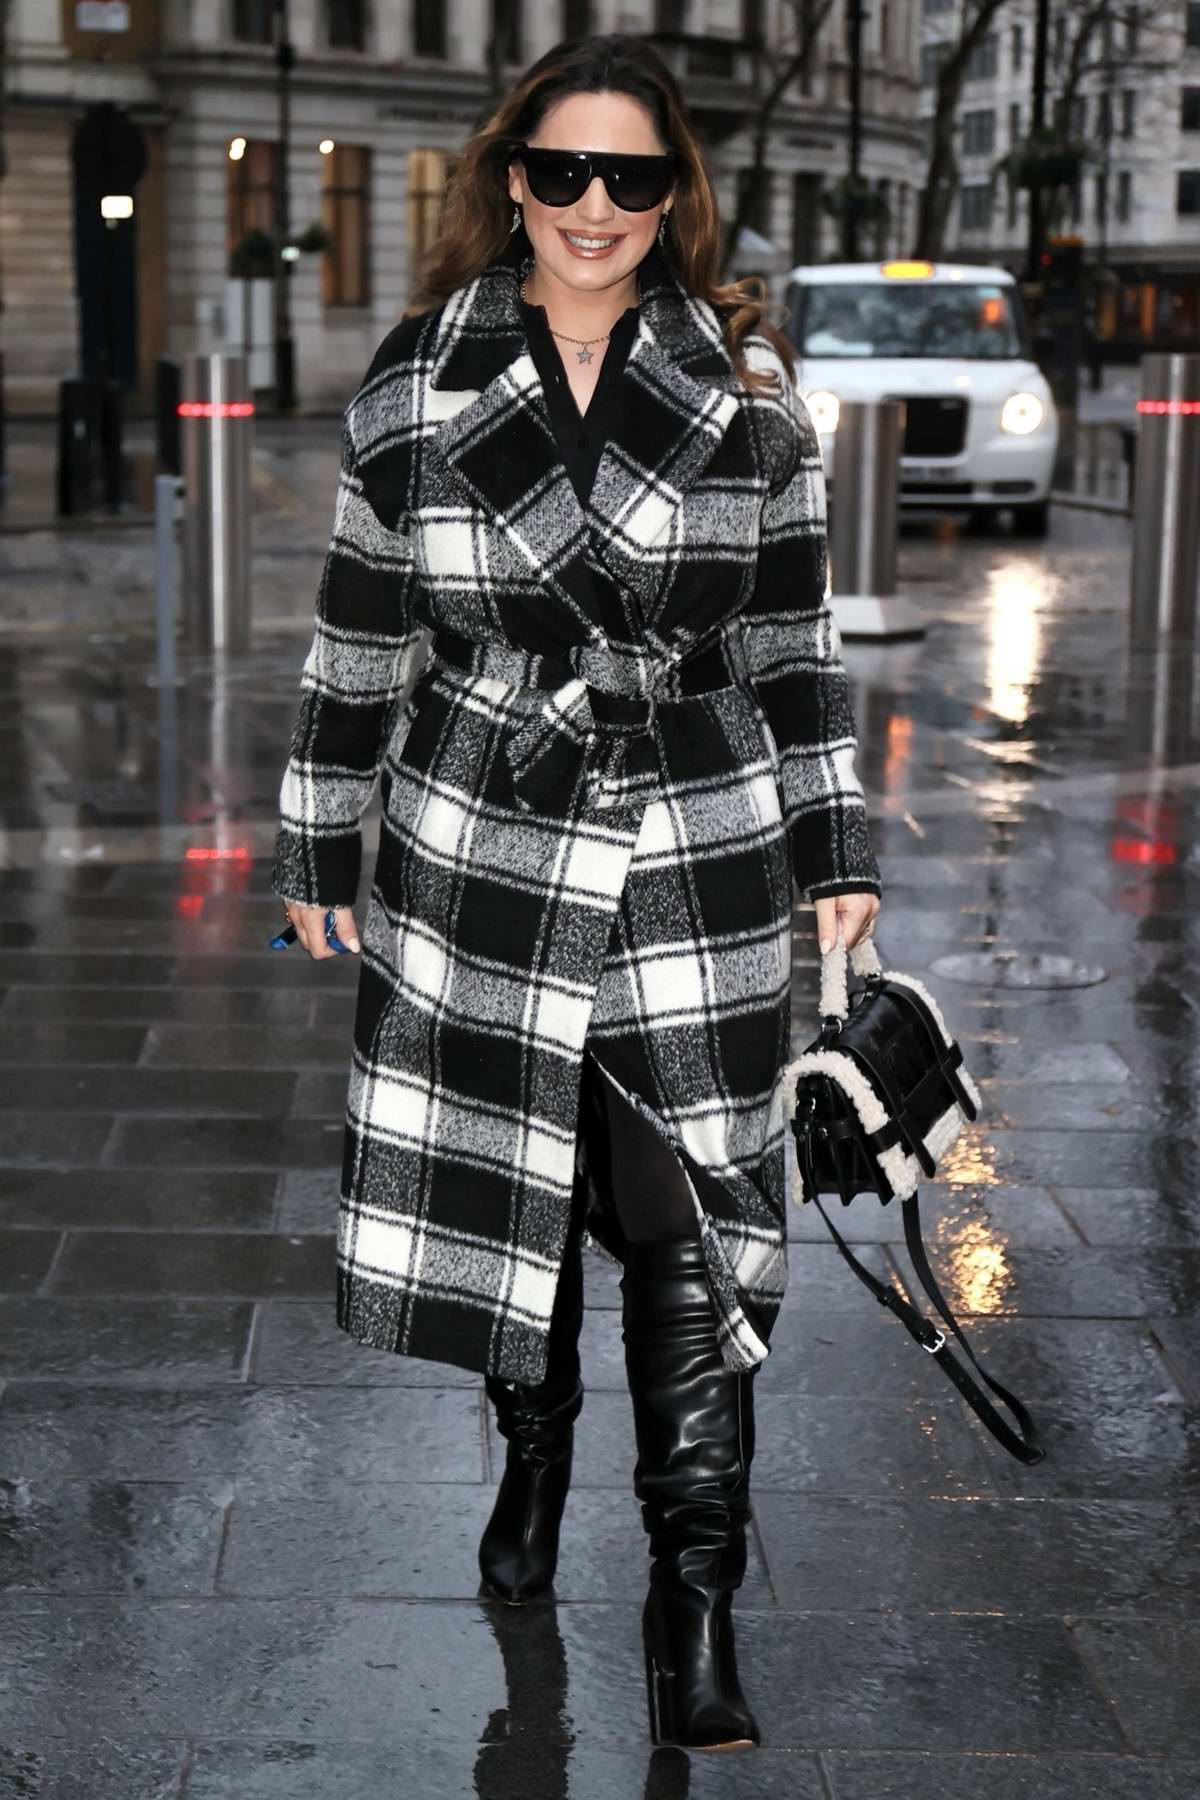 Kelly Brook looks chic in a checkered coat and boots outside the Heart Radio Studios in London, UK